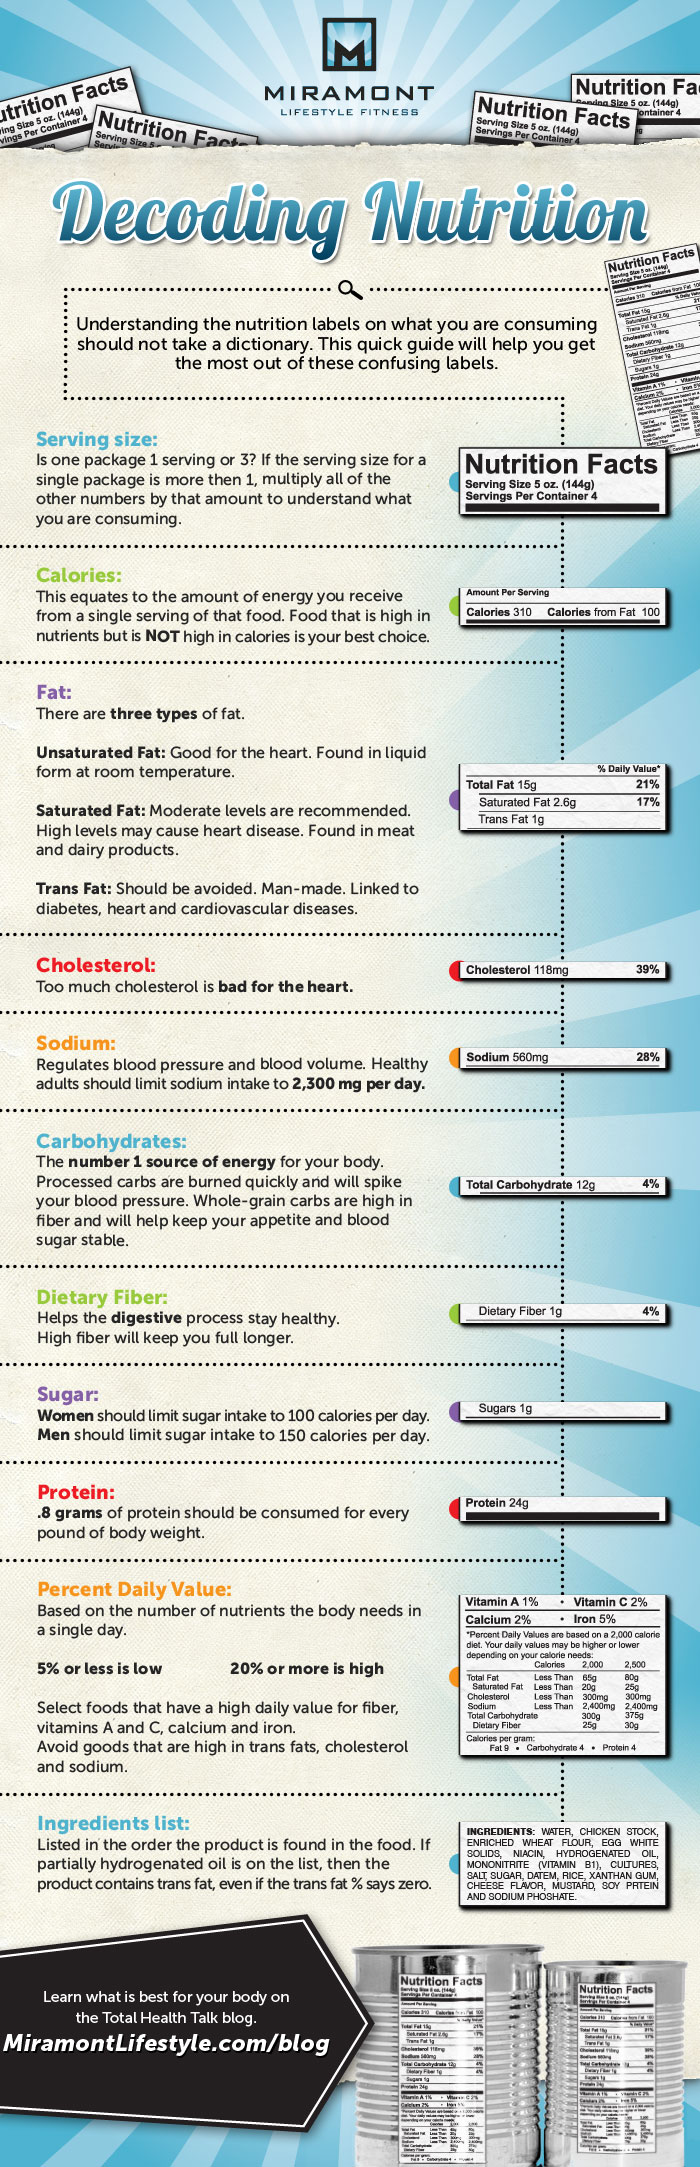 Decoding Nutrition Labels: A Complete Guide Infographic